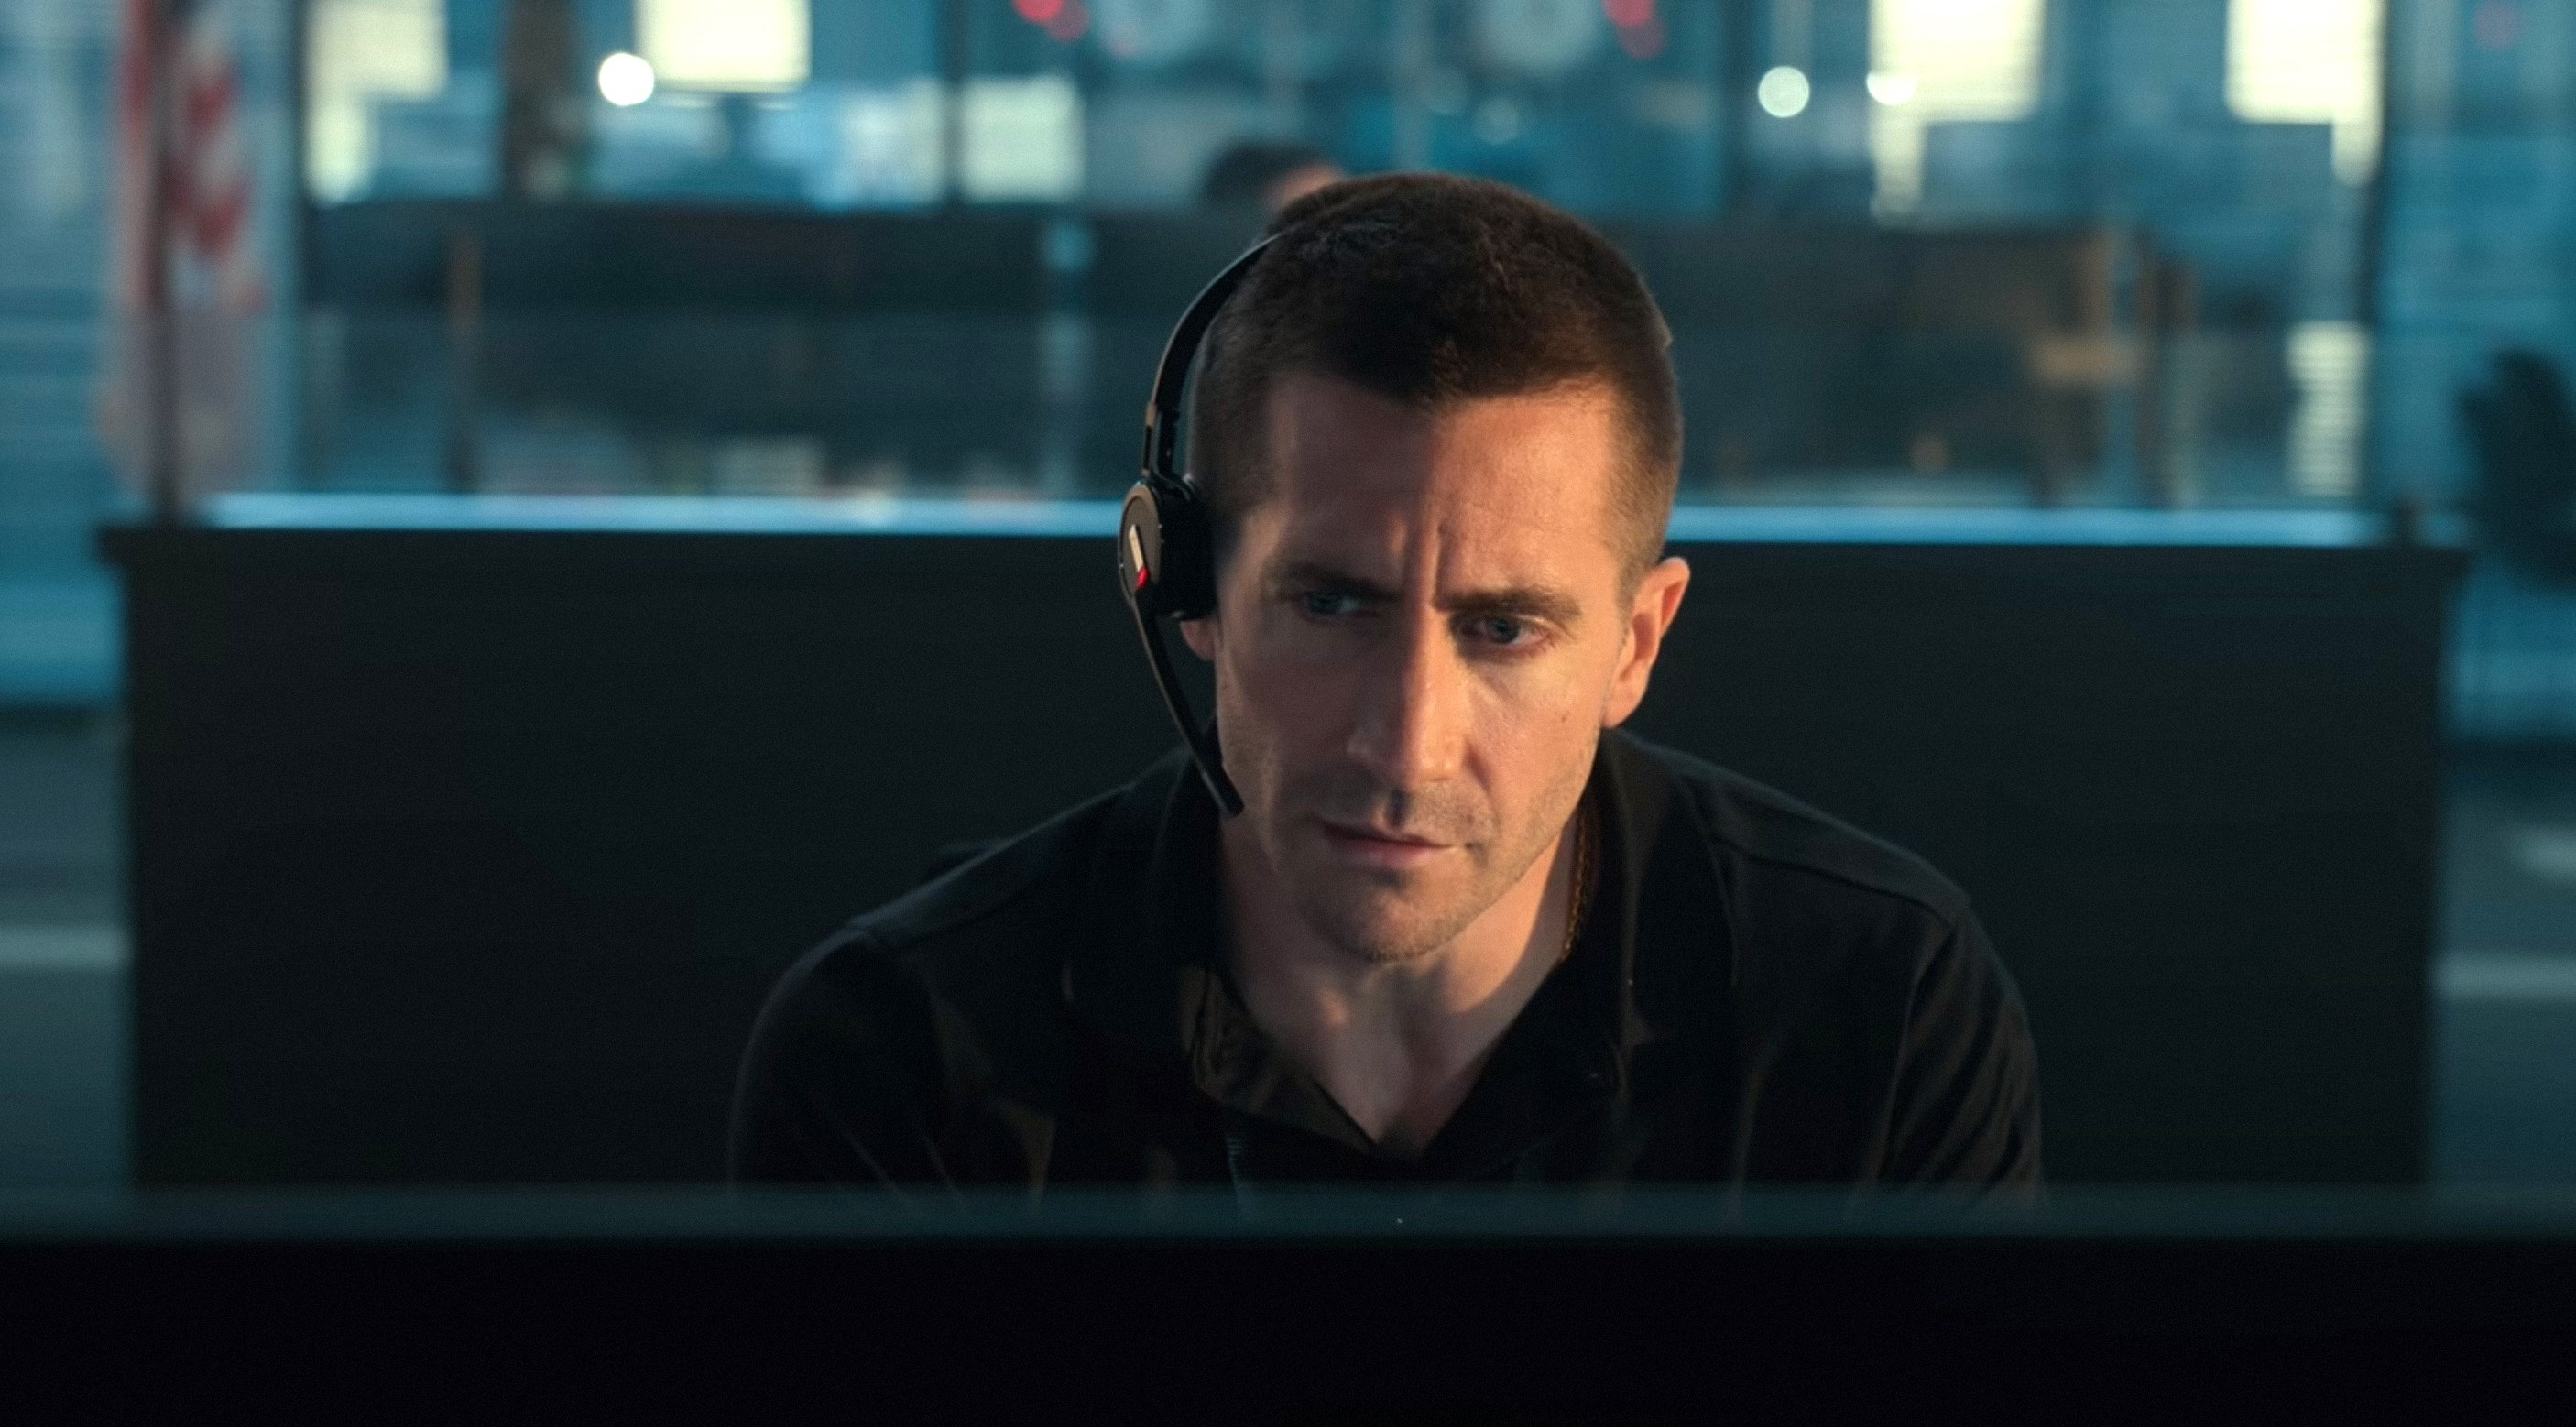 Jake Gyllenhaal sits in a call center with a headset on